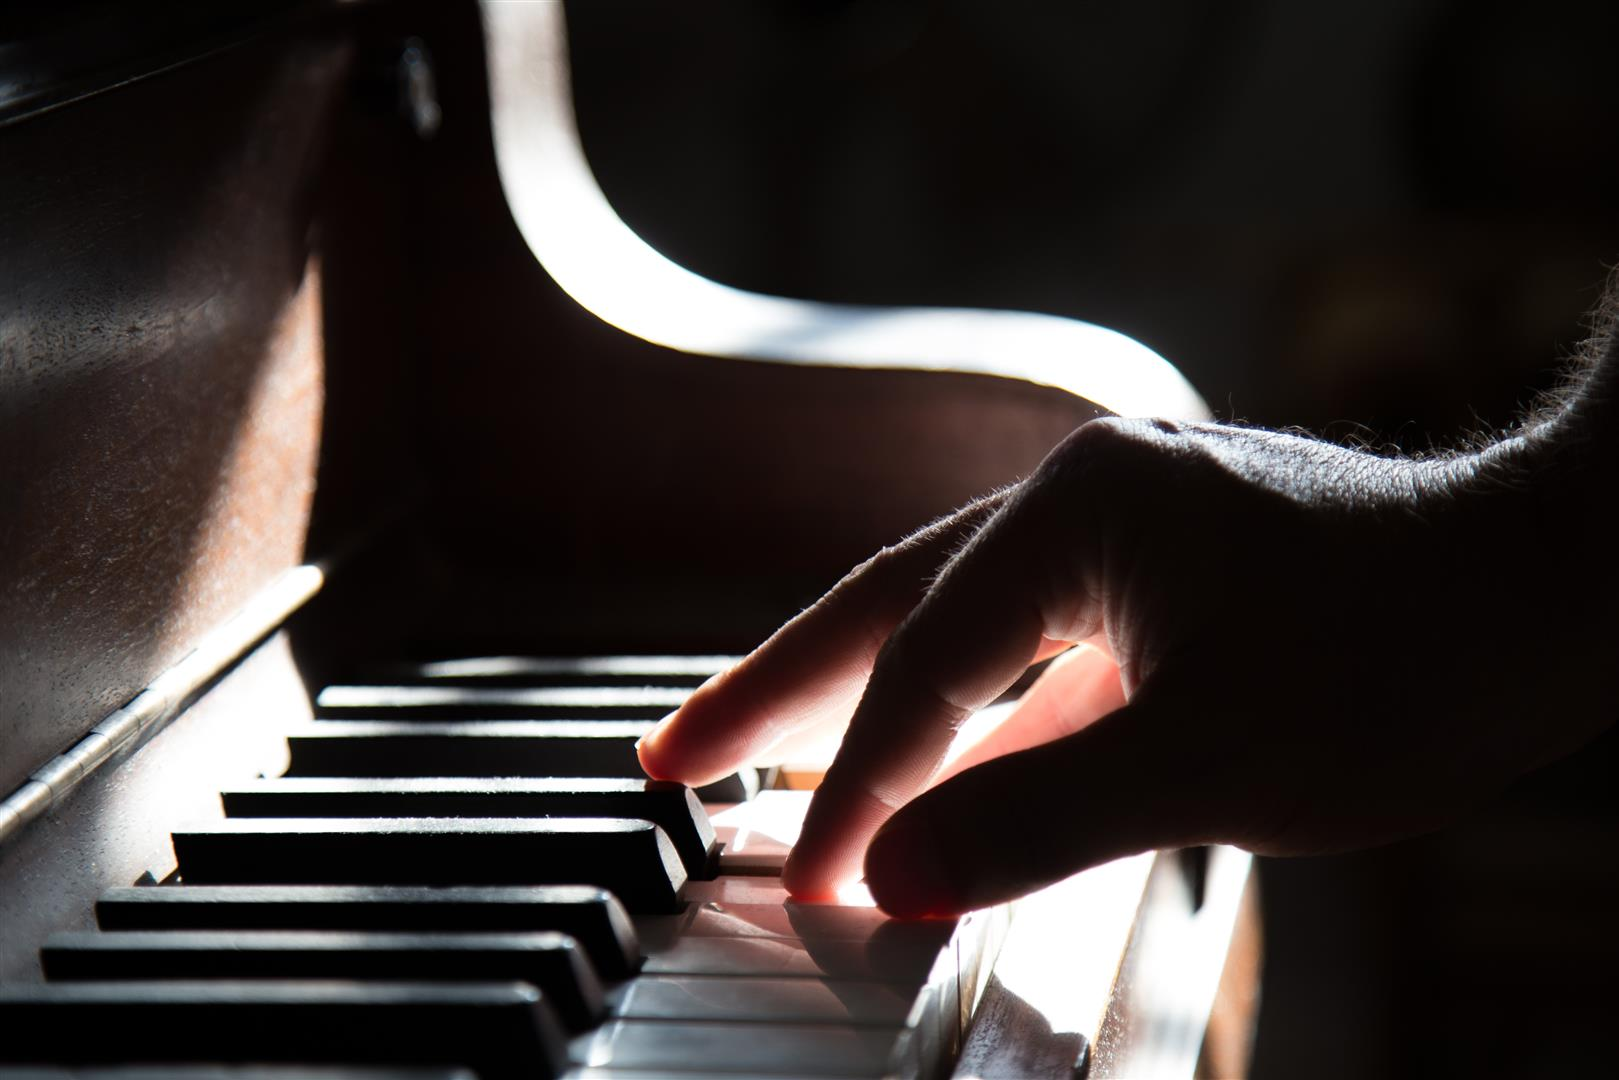 Pianist player